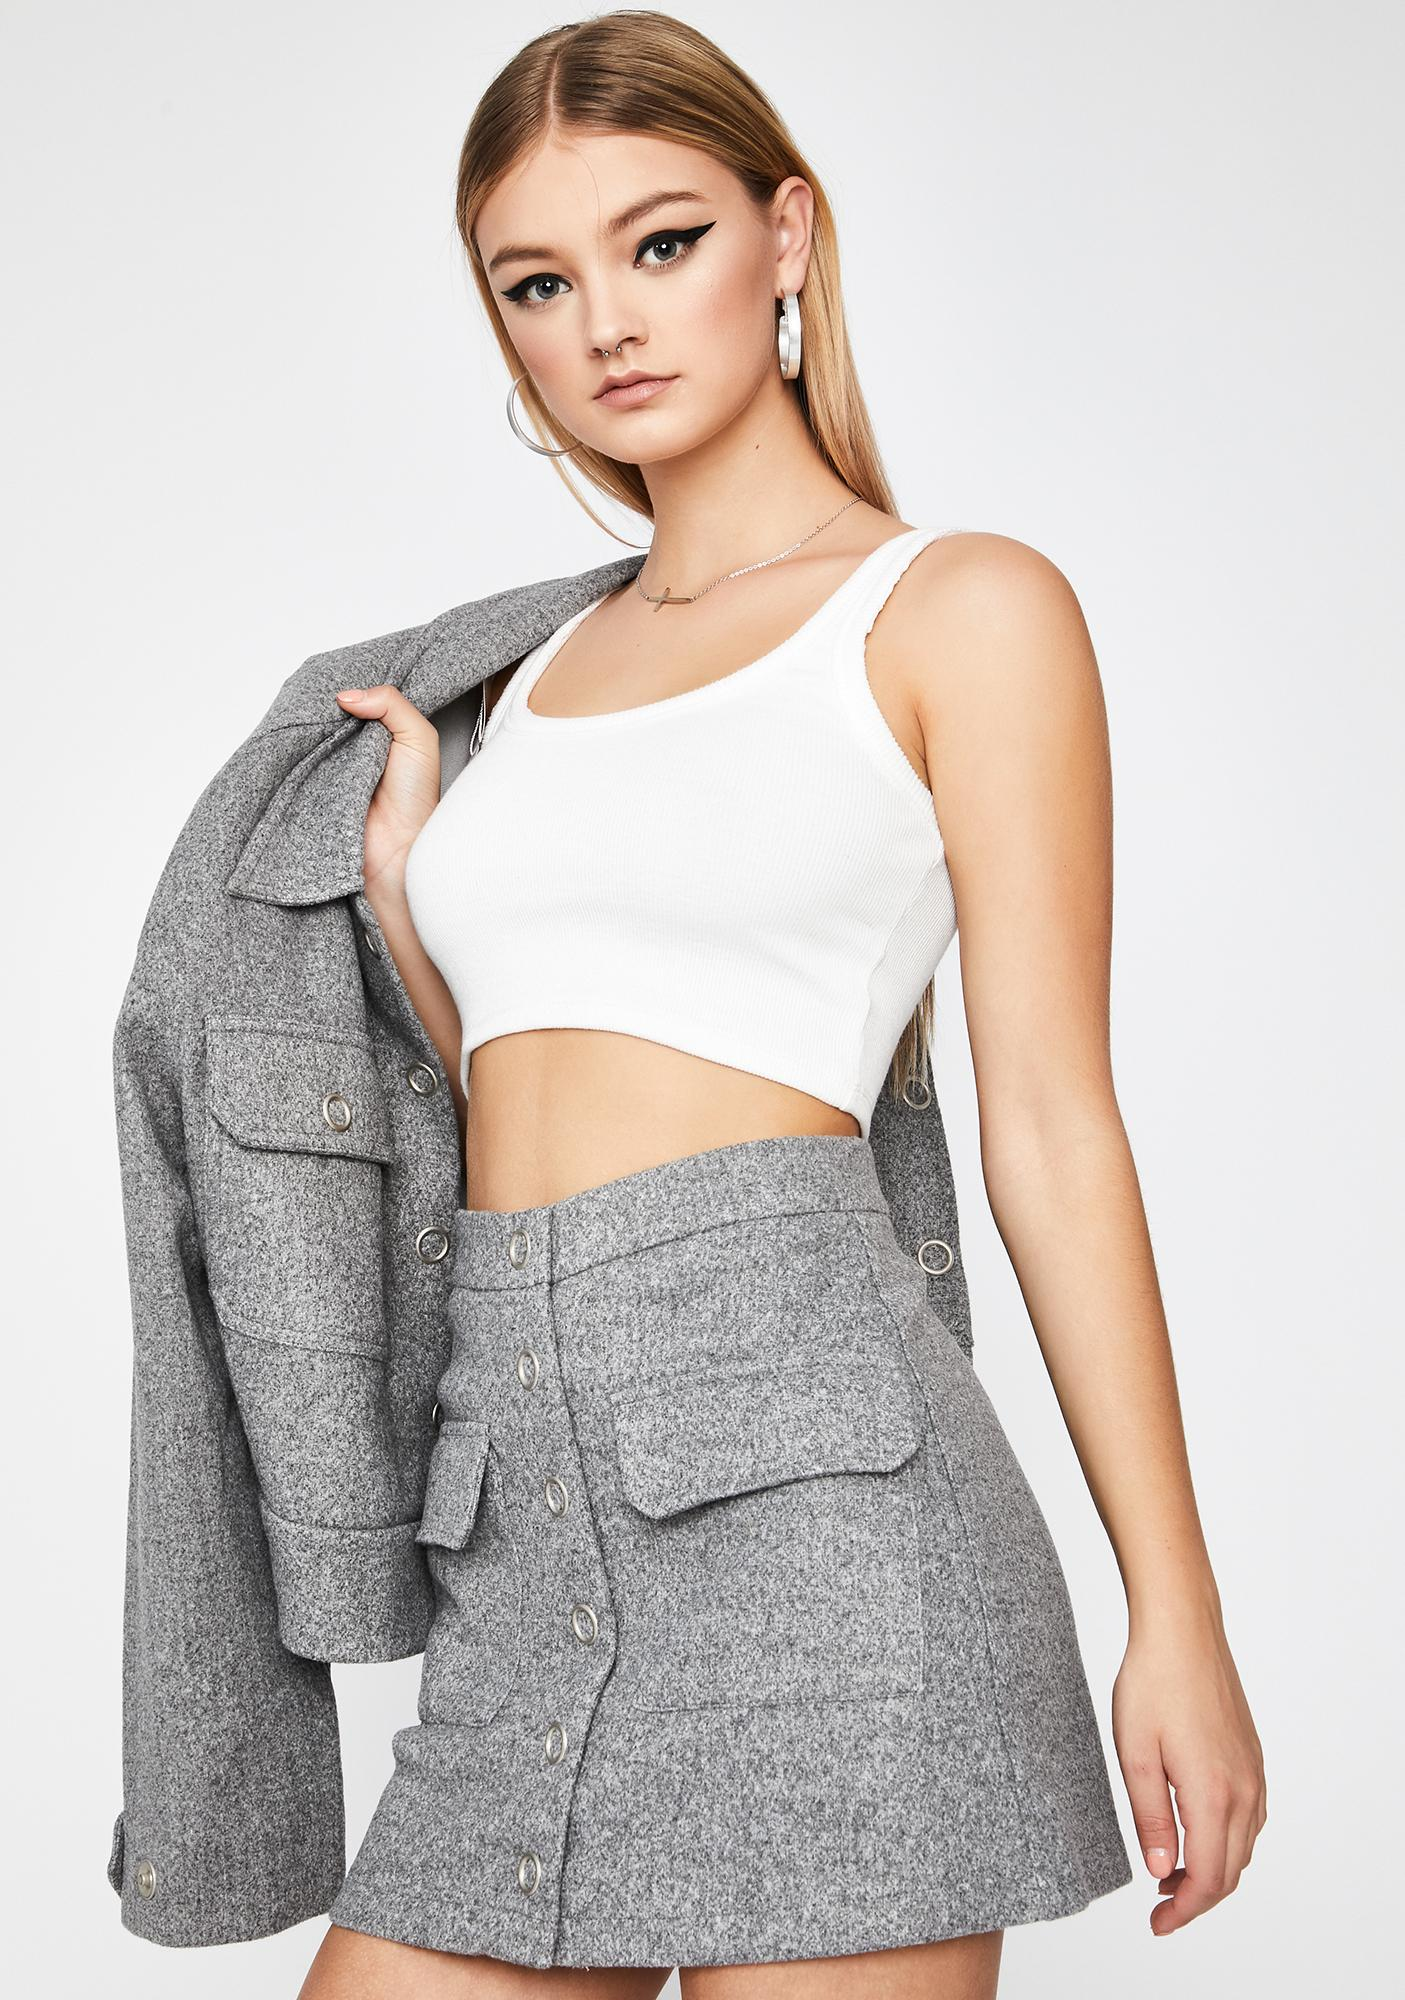 Dean's List Wool Skirt